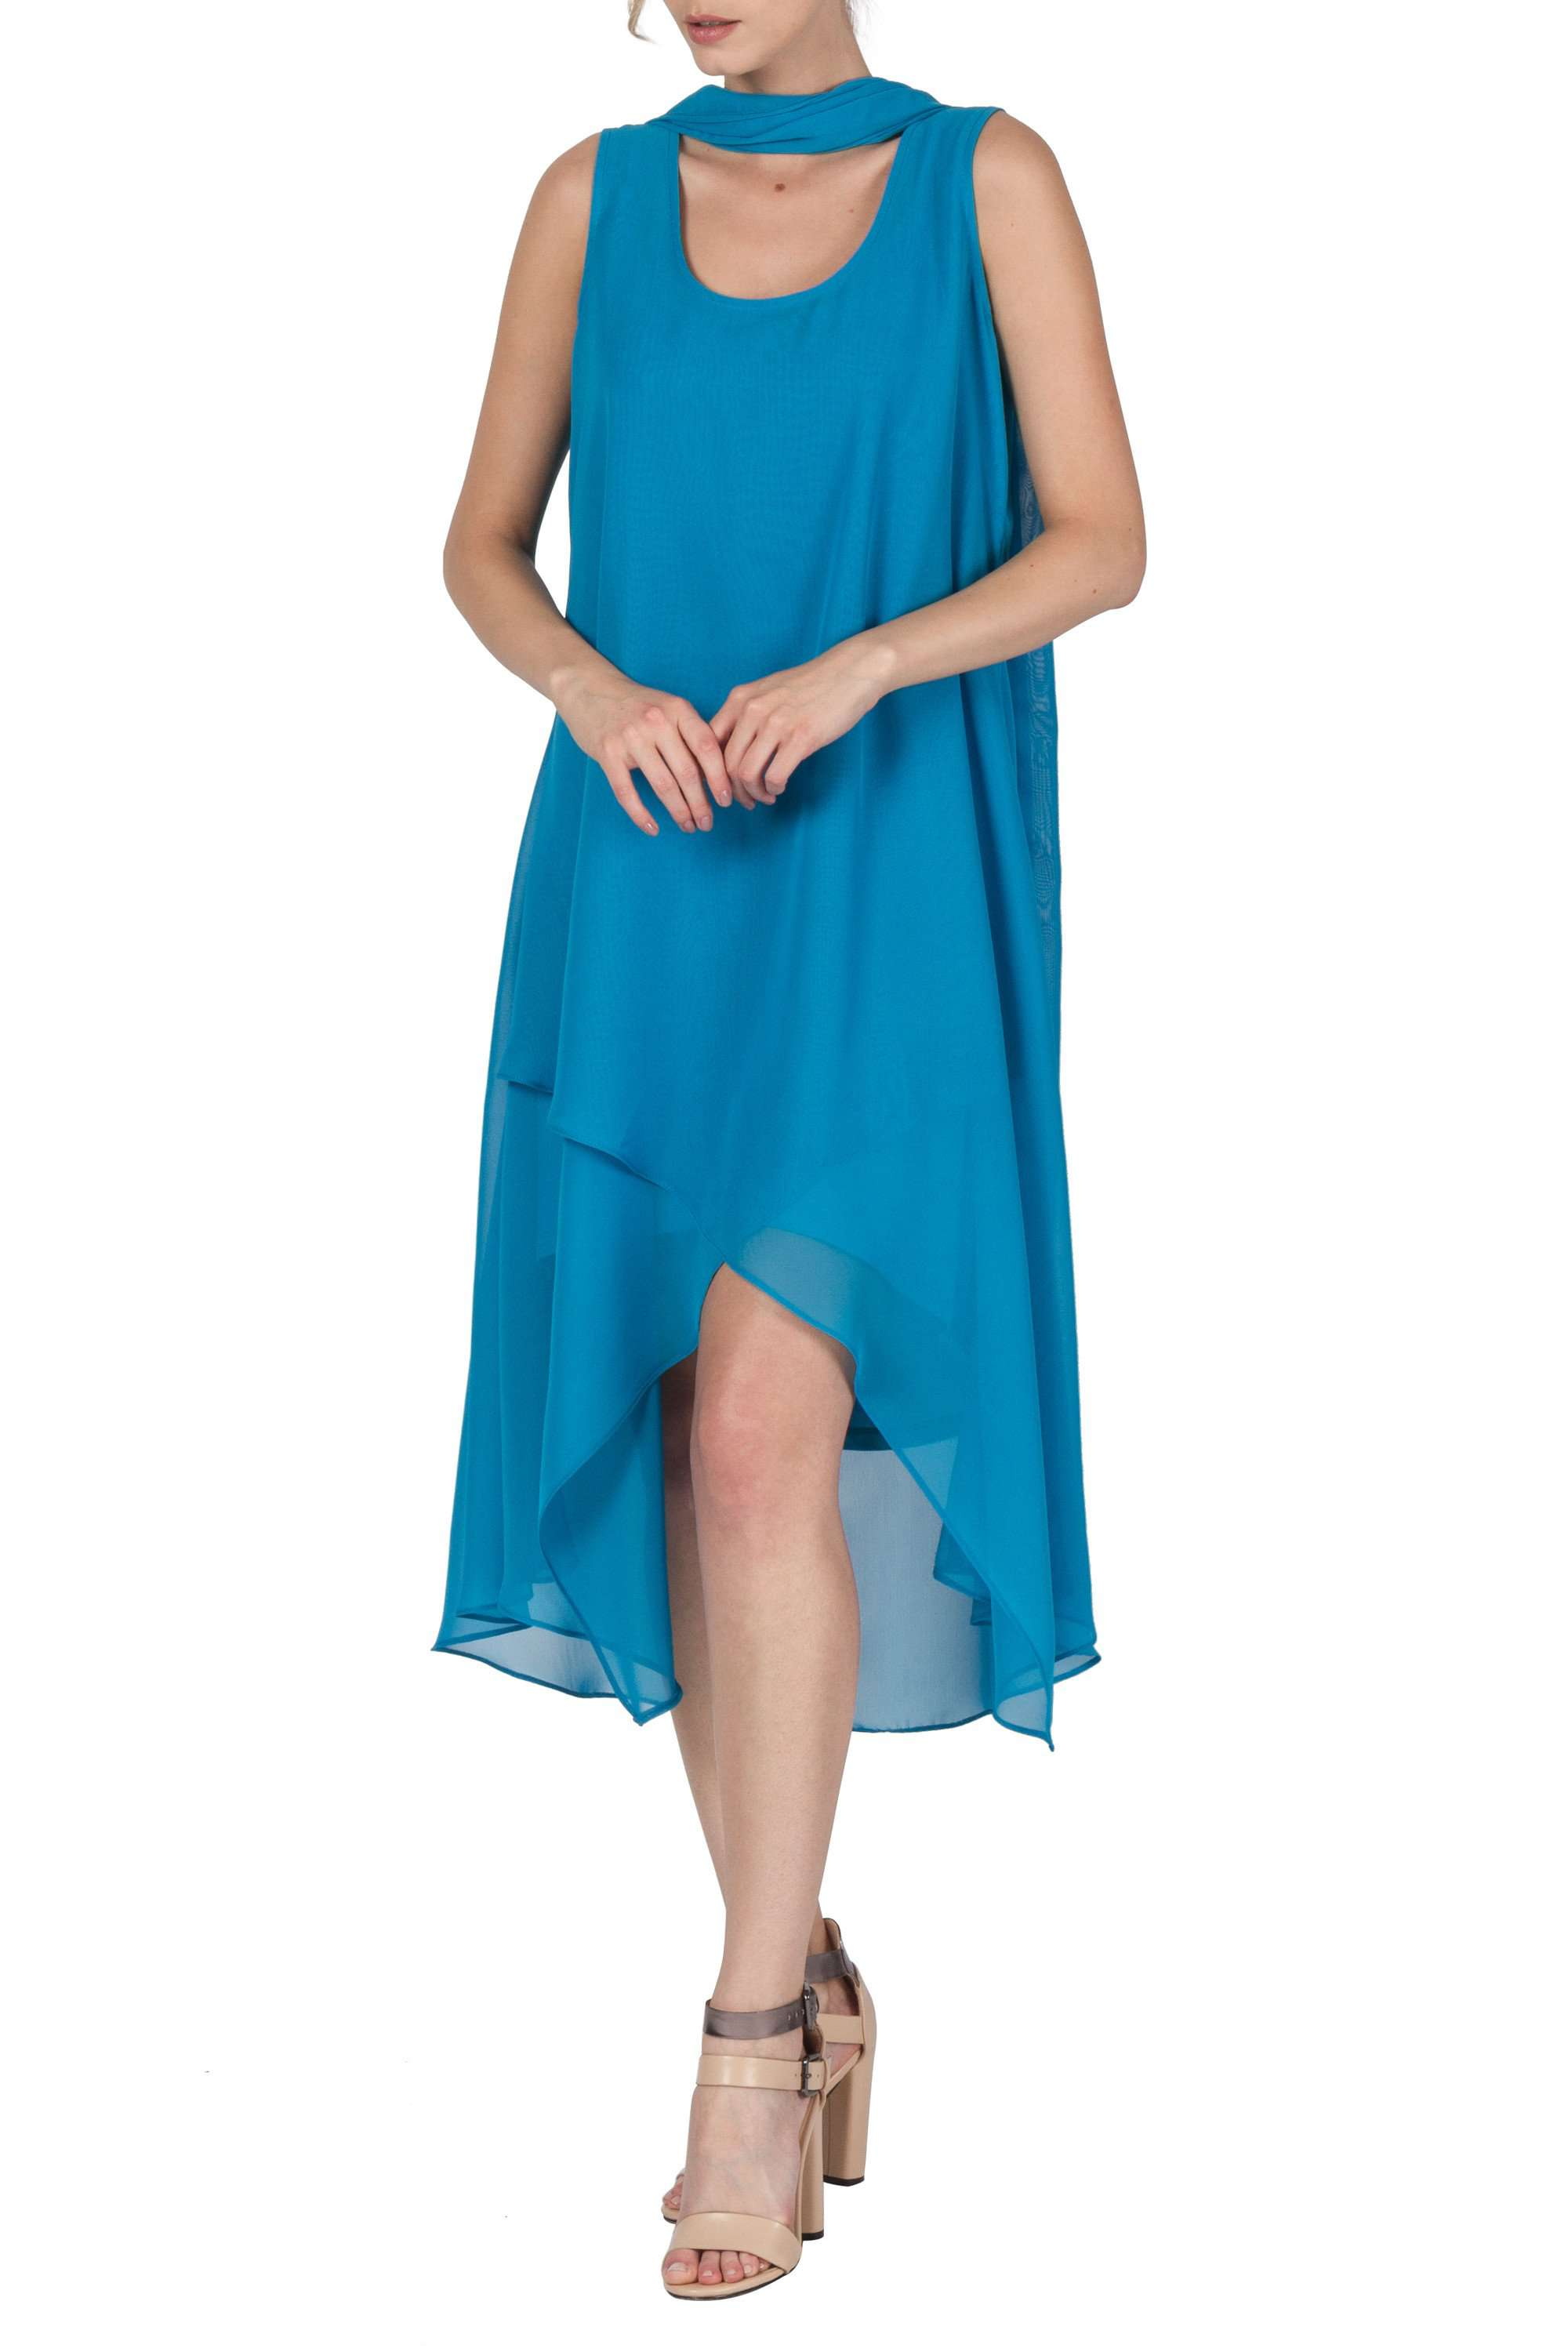 Women's Turquoise Chiffon Dress - Made in Canada - Yvonne Marie